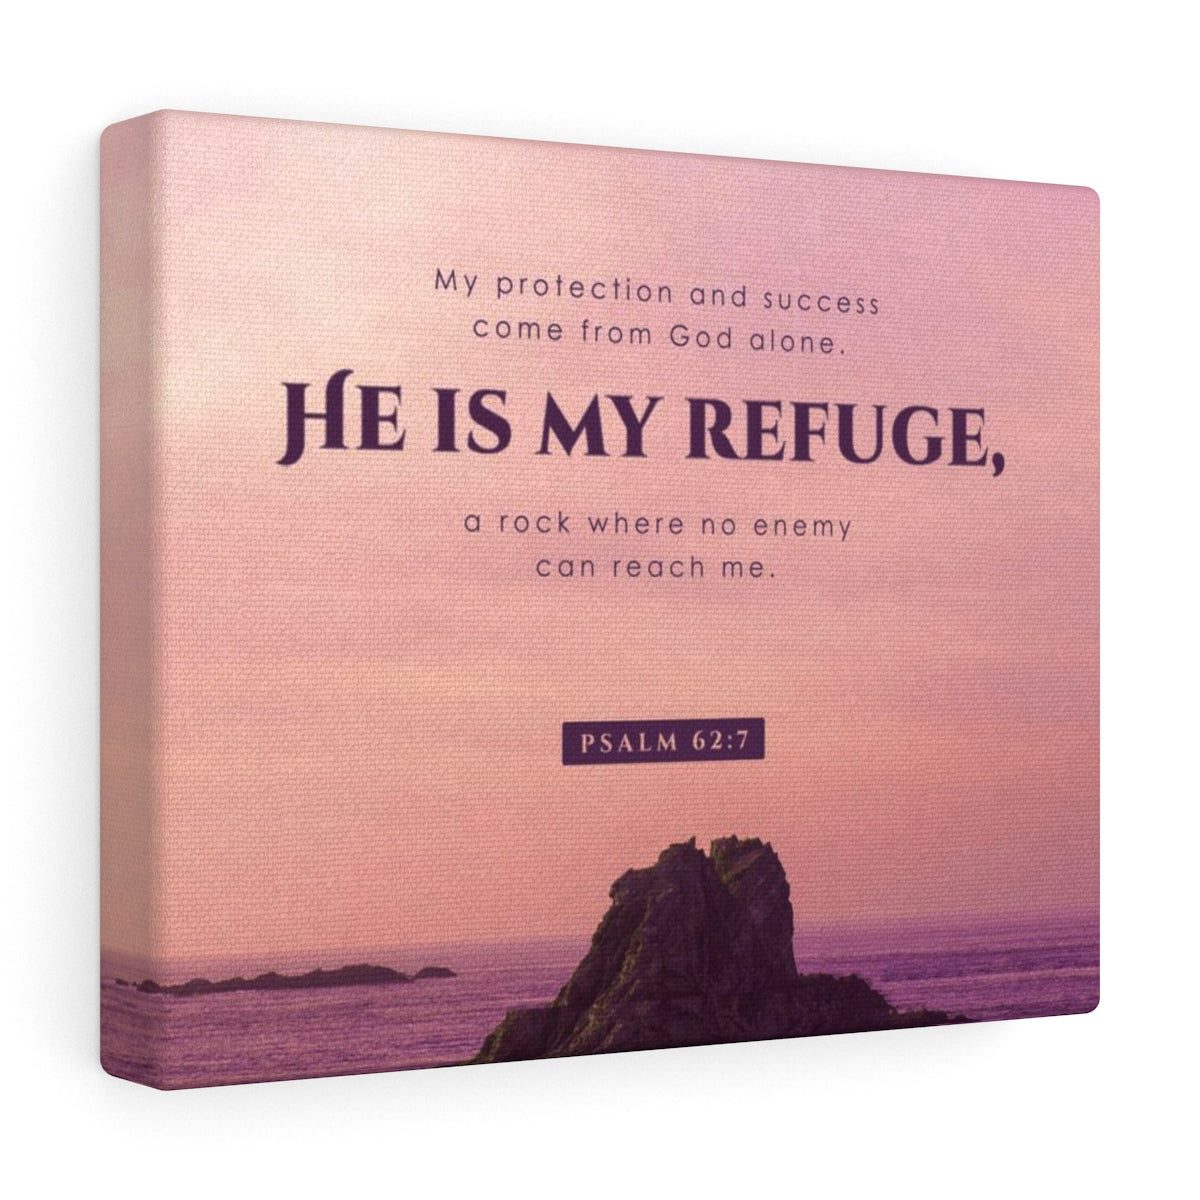 He Is My Refuge Canvas Gallery Wraps - Shop Love God